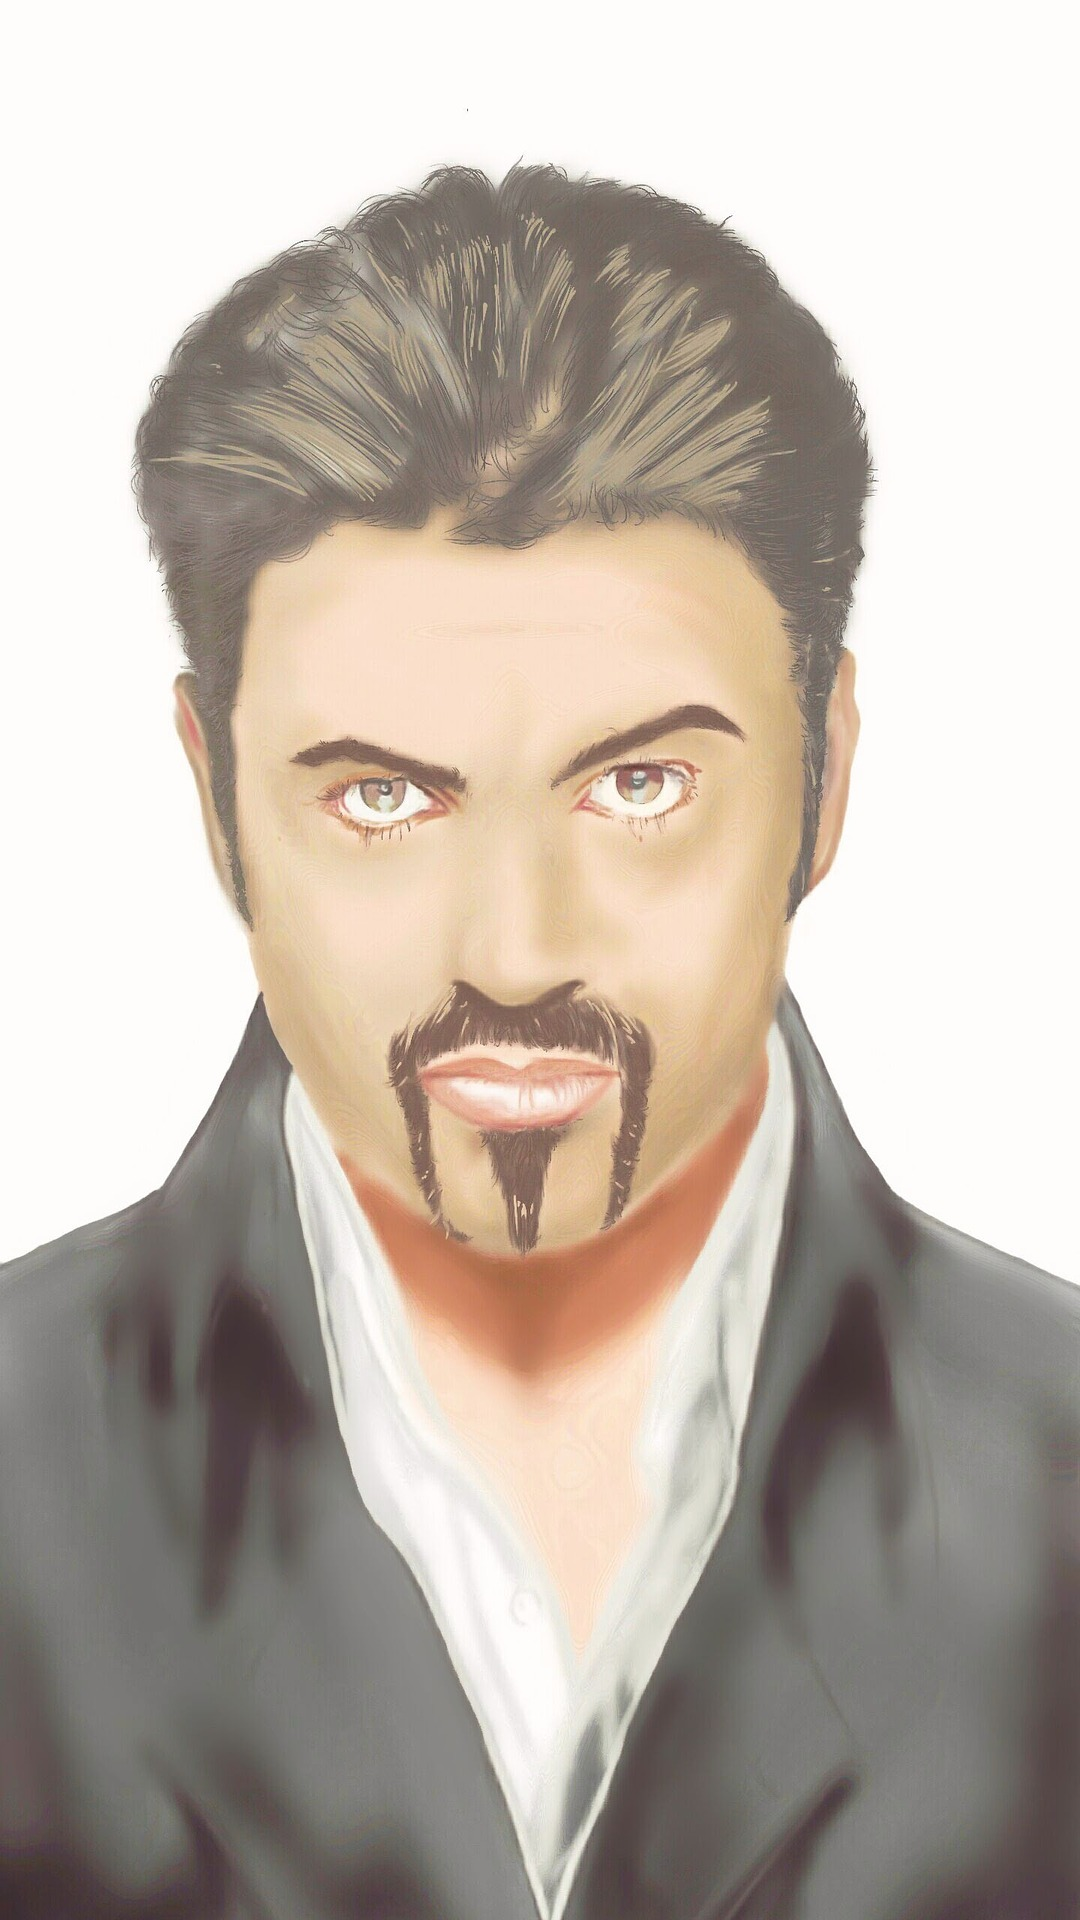 In Gratitude to Singer/Songwriter, George Michael for His Inspiration and Beautiful Music